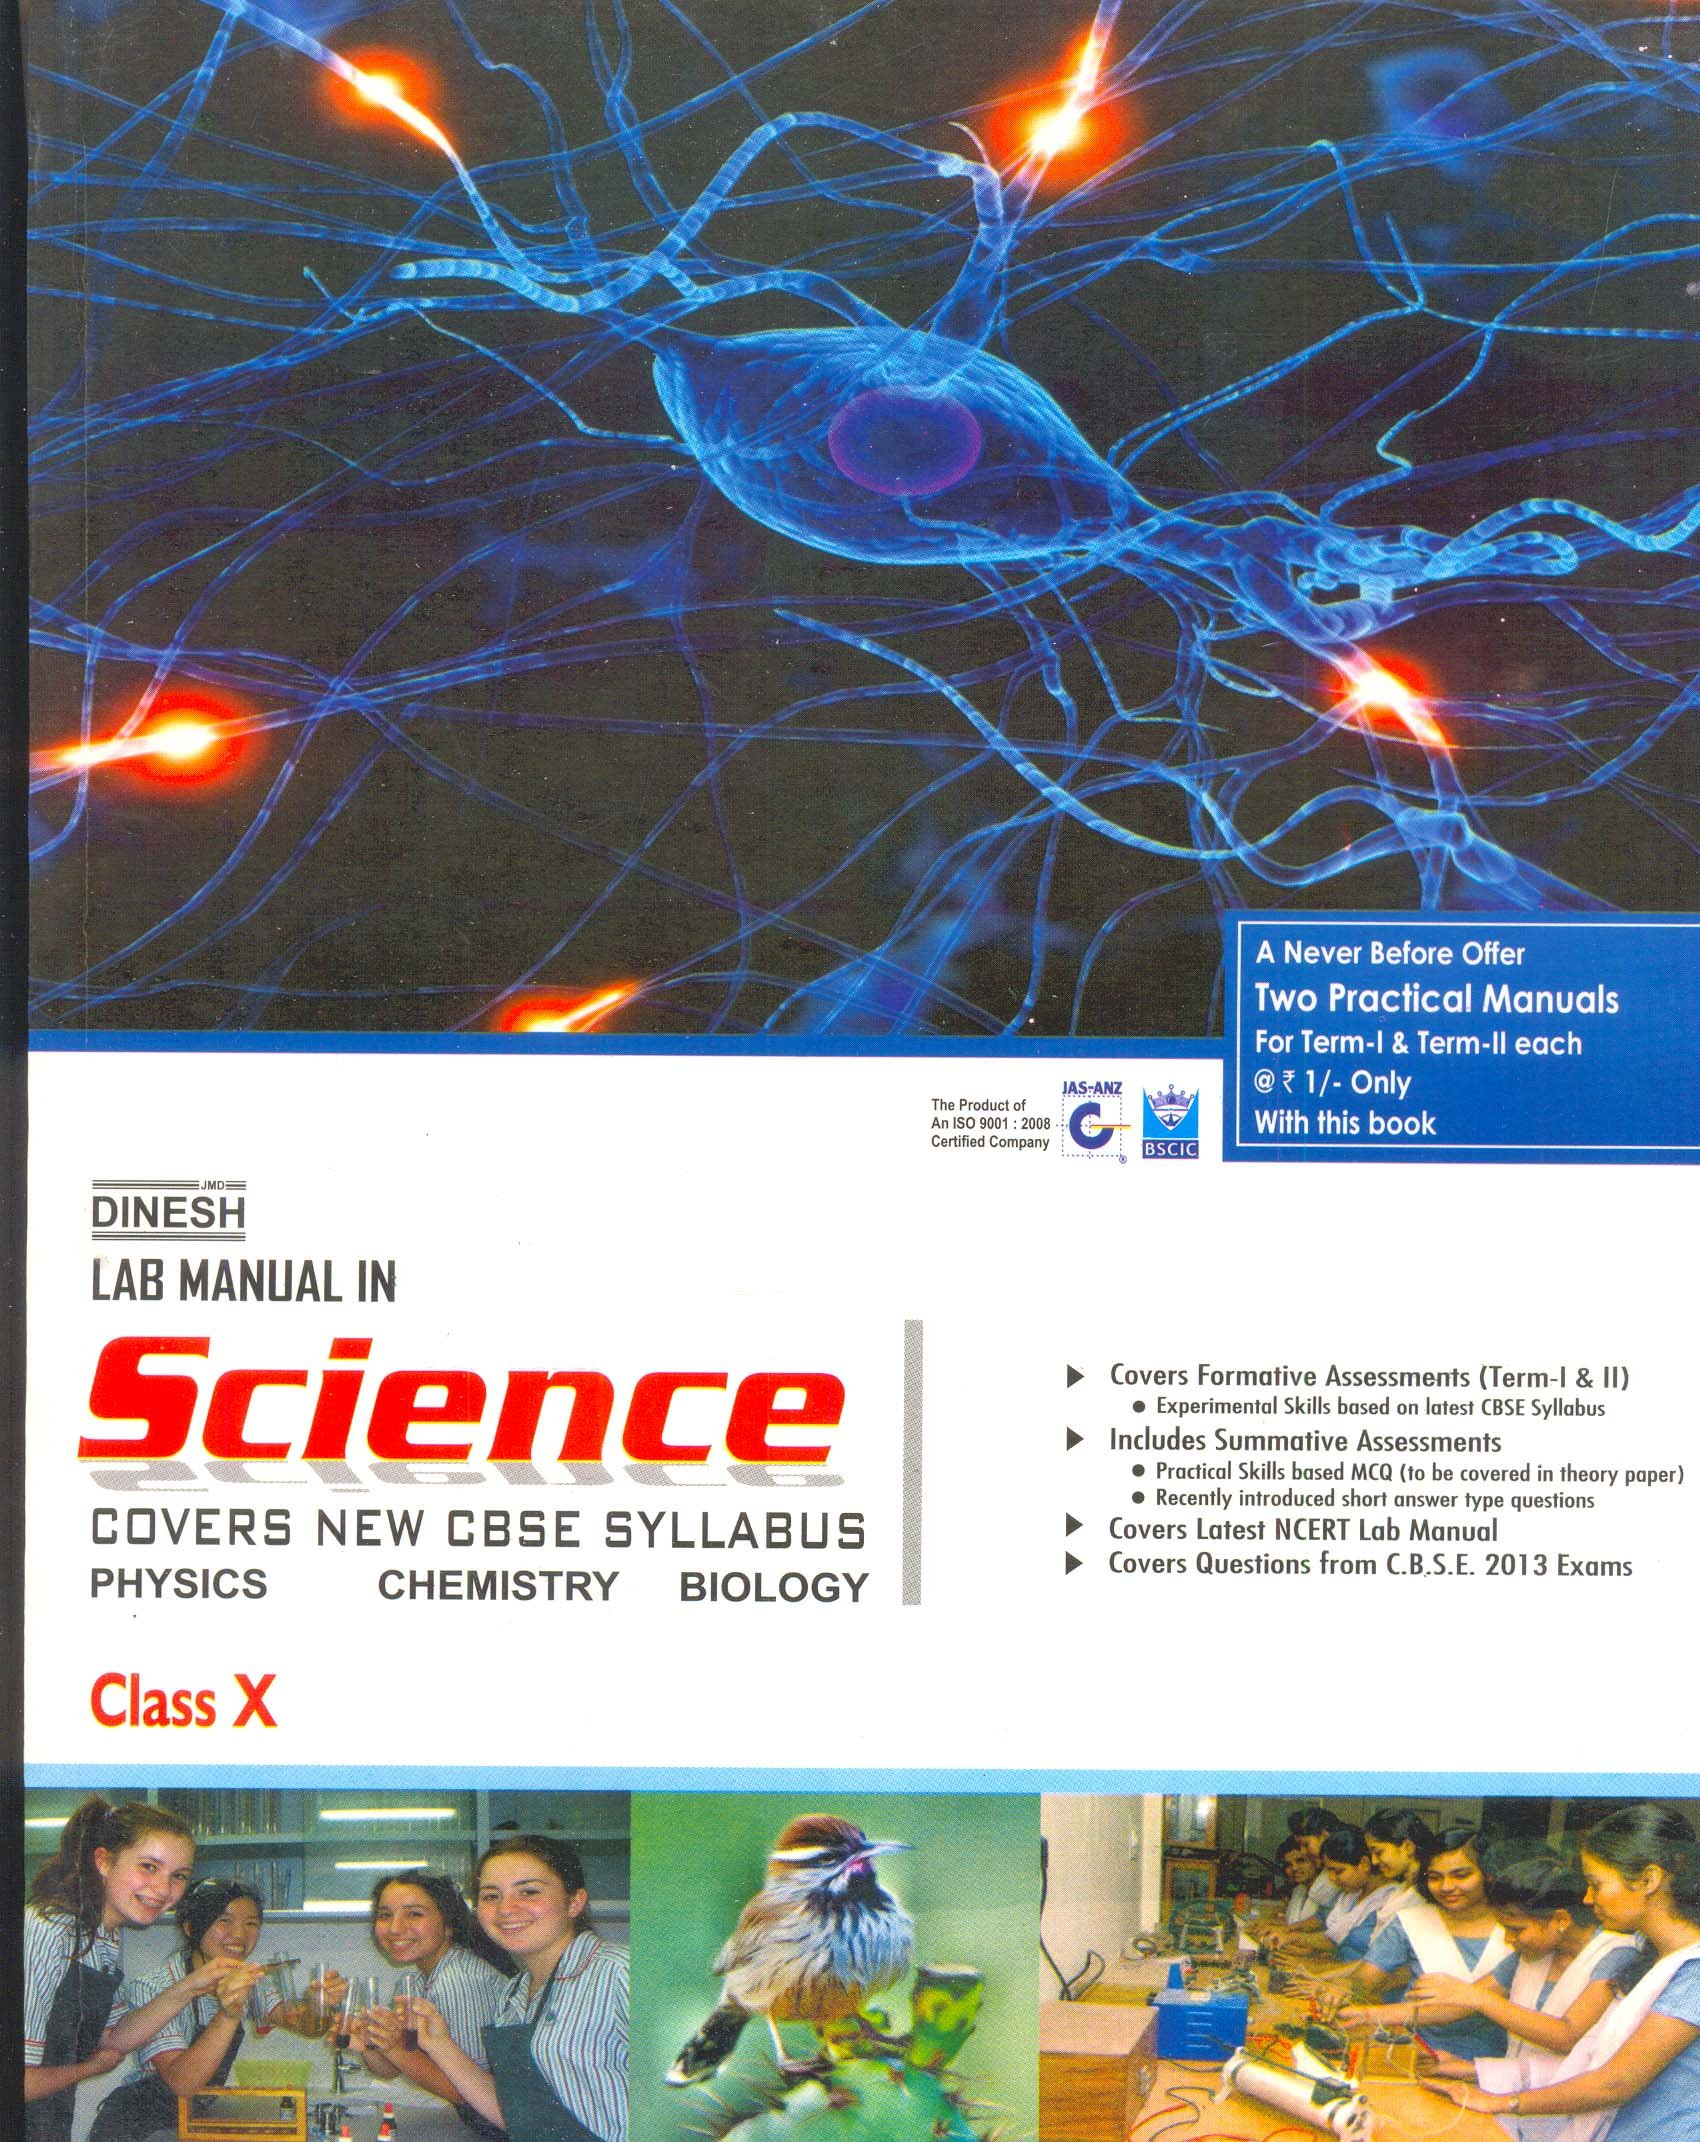 Dinesh Lab Manual in Science Class X With Two Practical Manuals Term1 &  Term 2: Amazon.in: Sharma N: Books